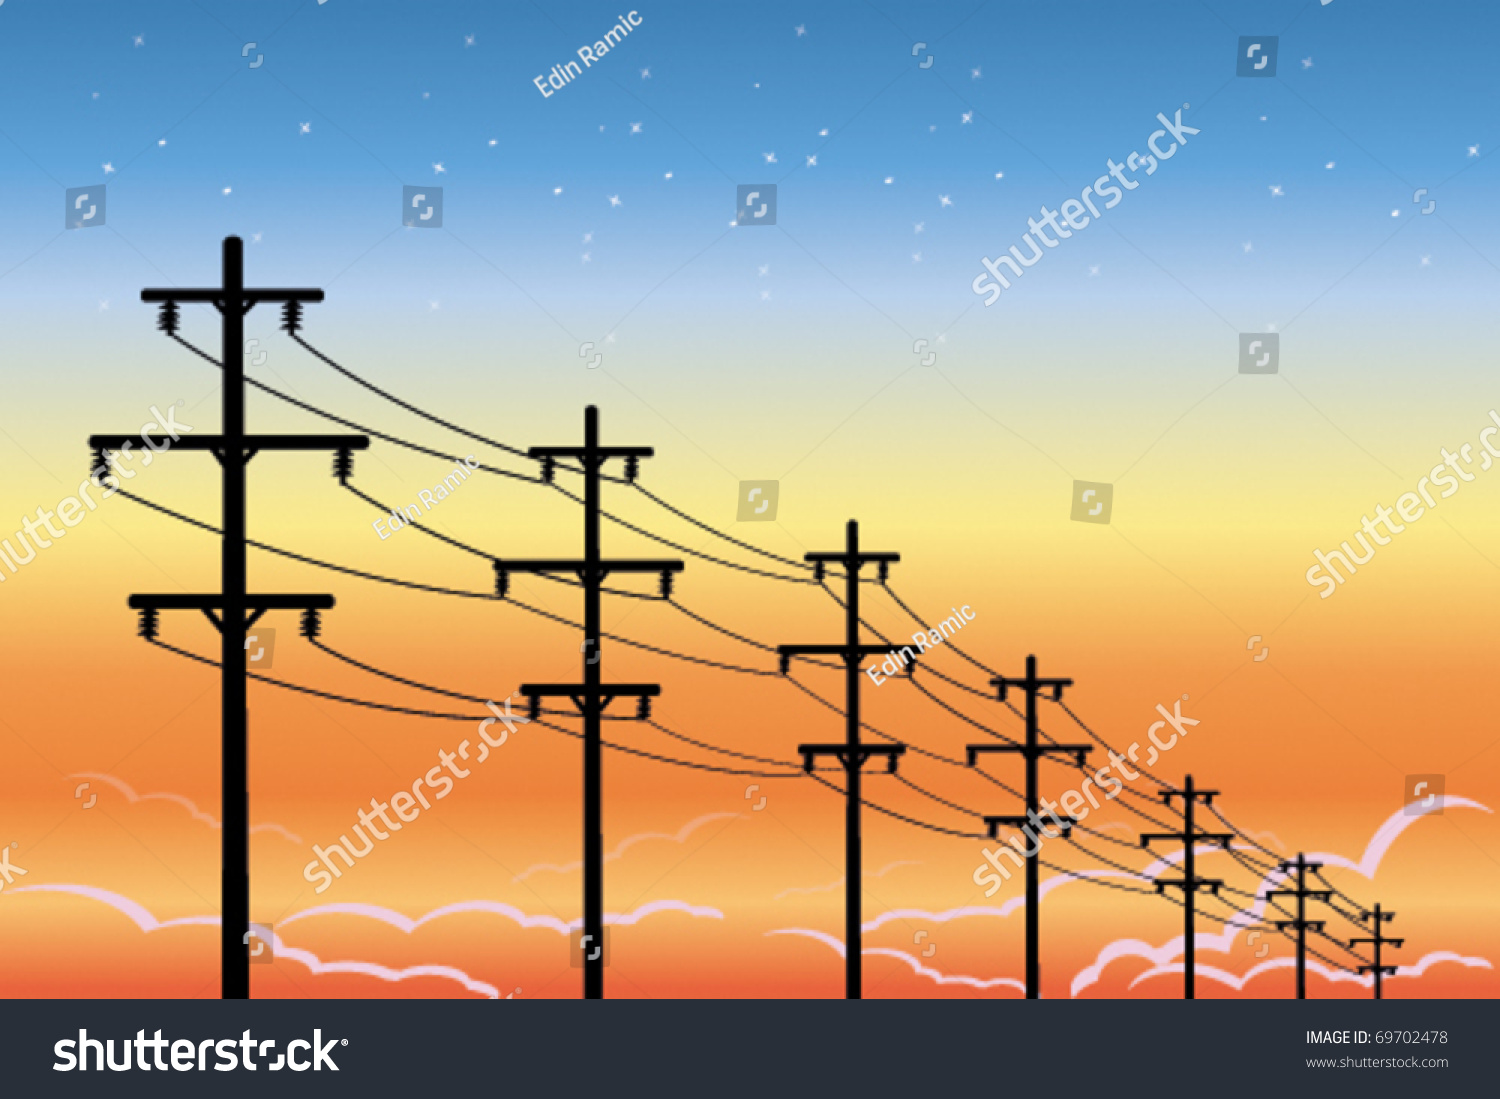 High Voltage Electrical Lines : High voltage power lines stock vector shutterstock